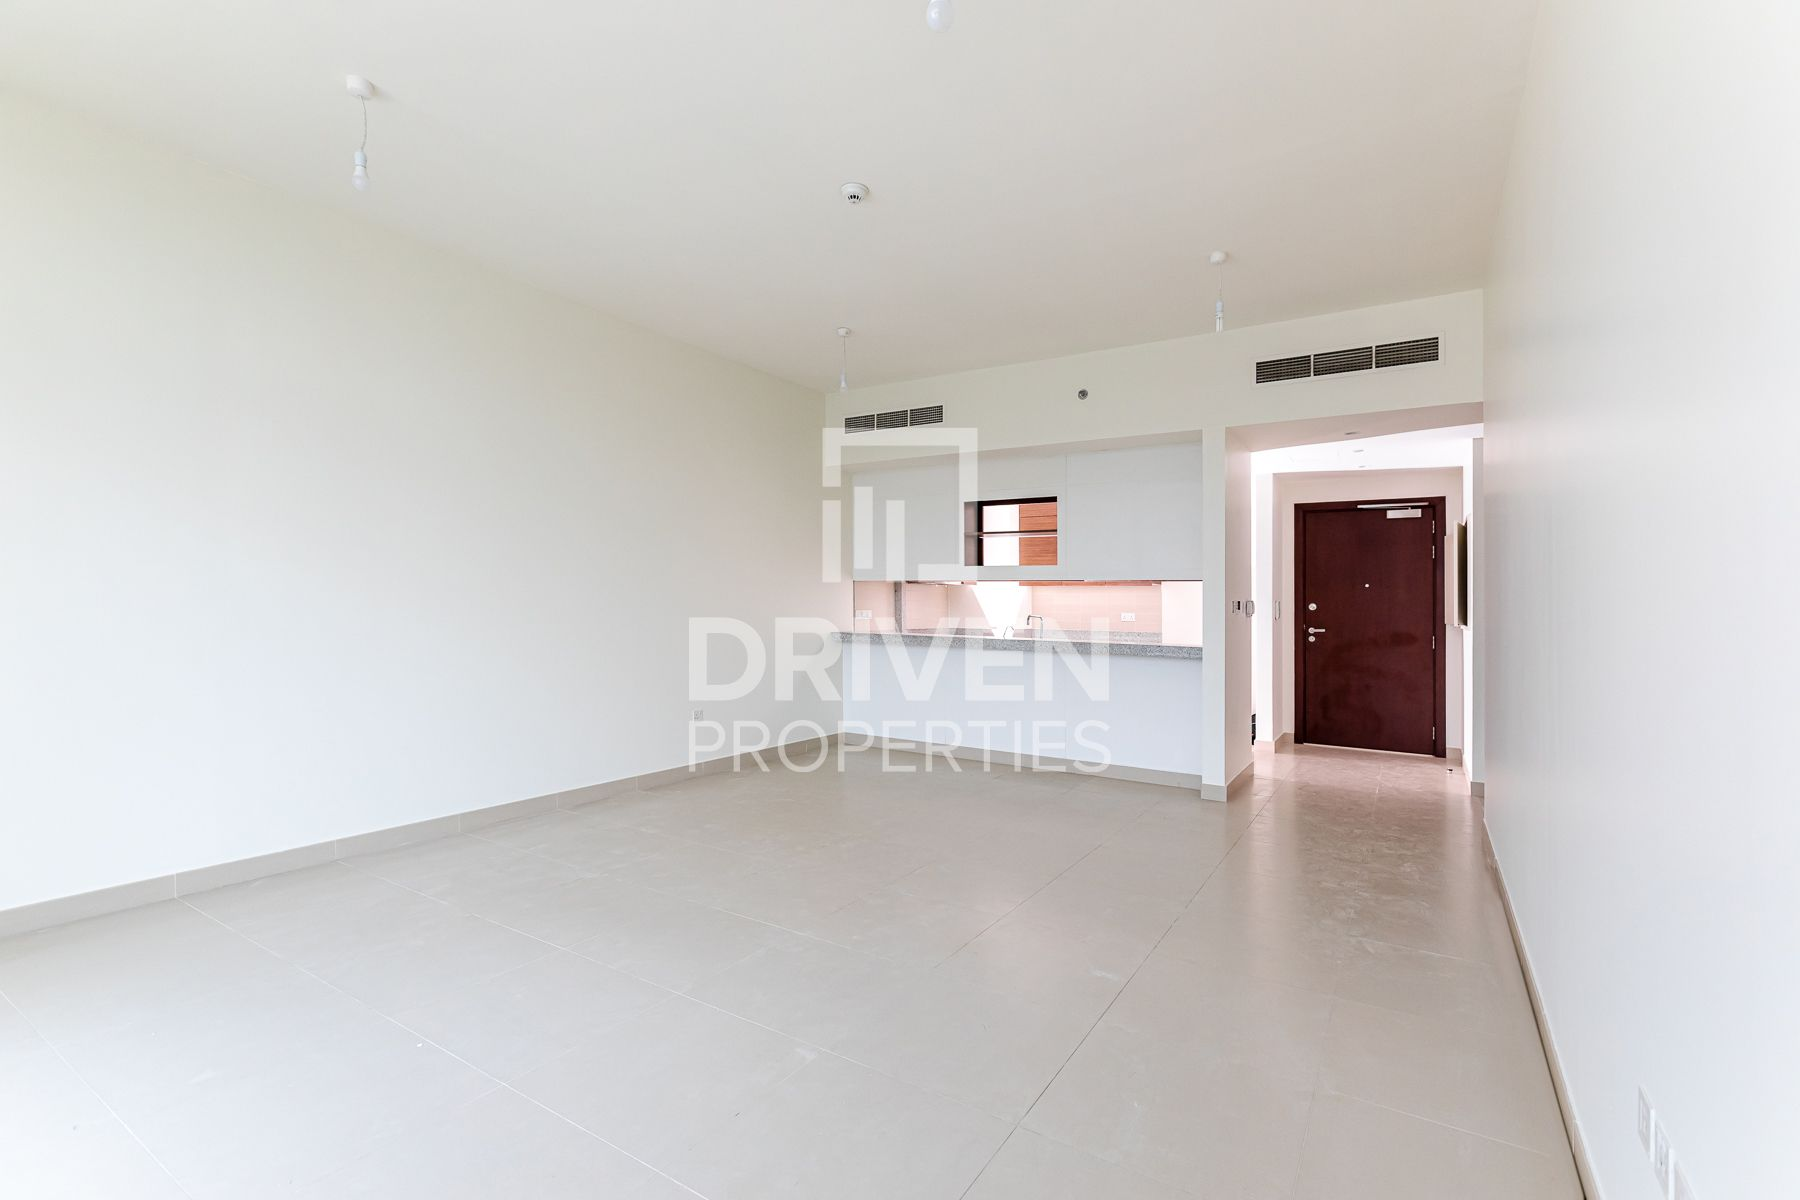 Spacious & Bright Apt | Ready to move in